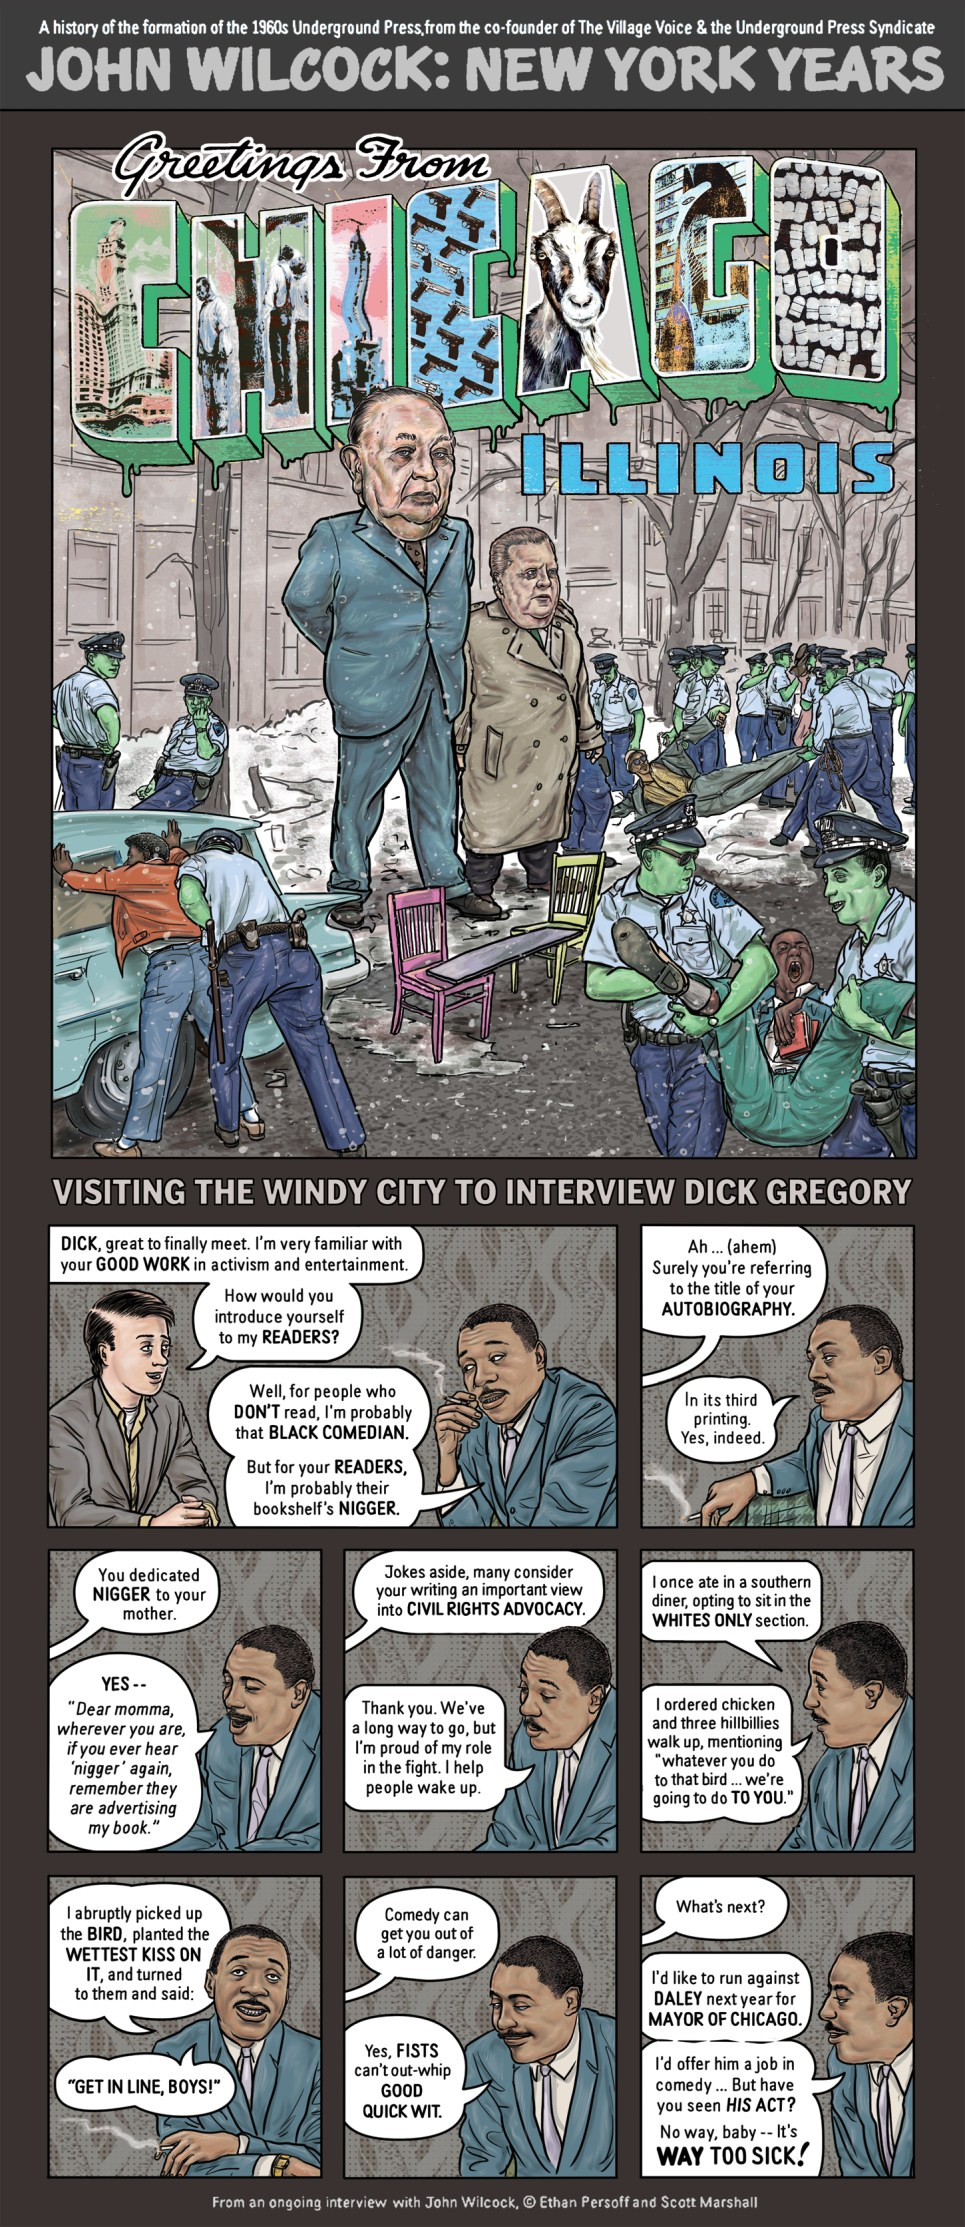 Dick Gregory by Ethan Persoff and Scott Marshall